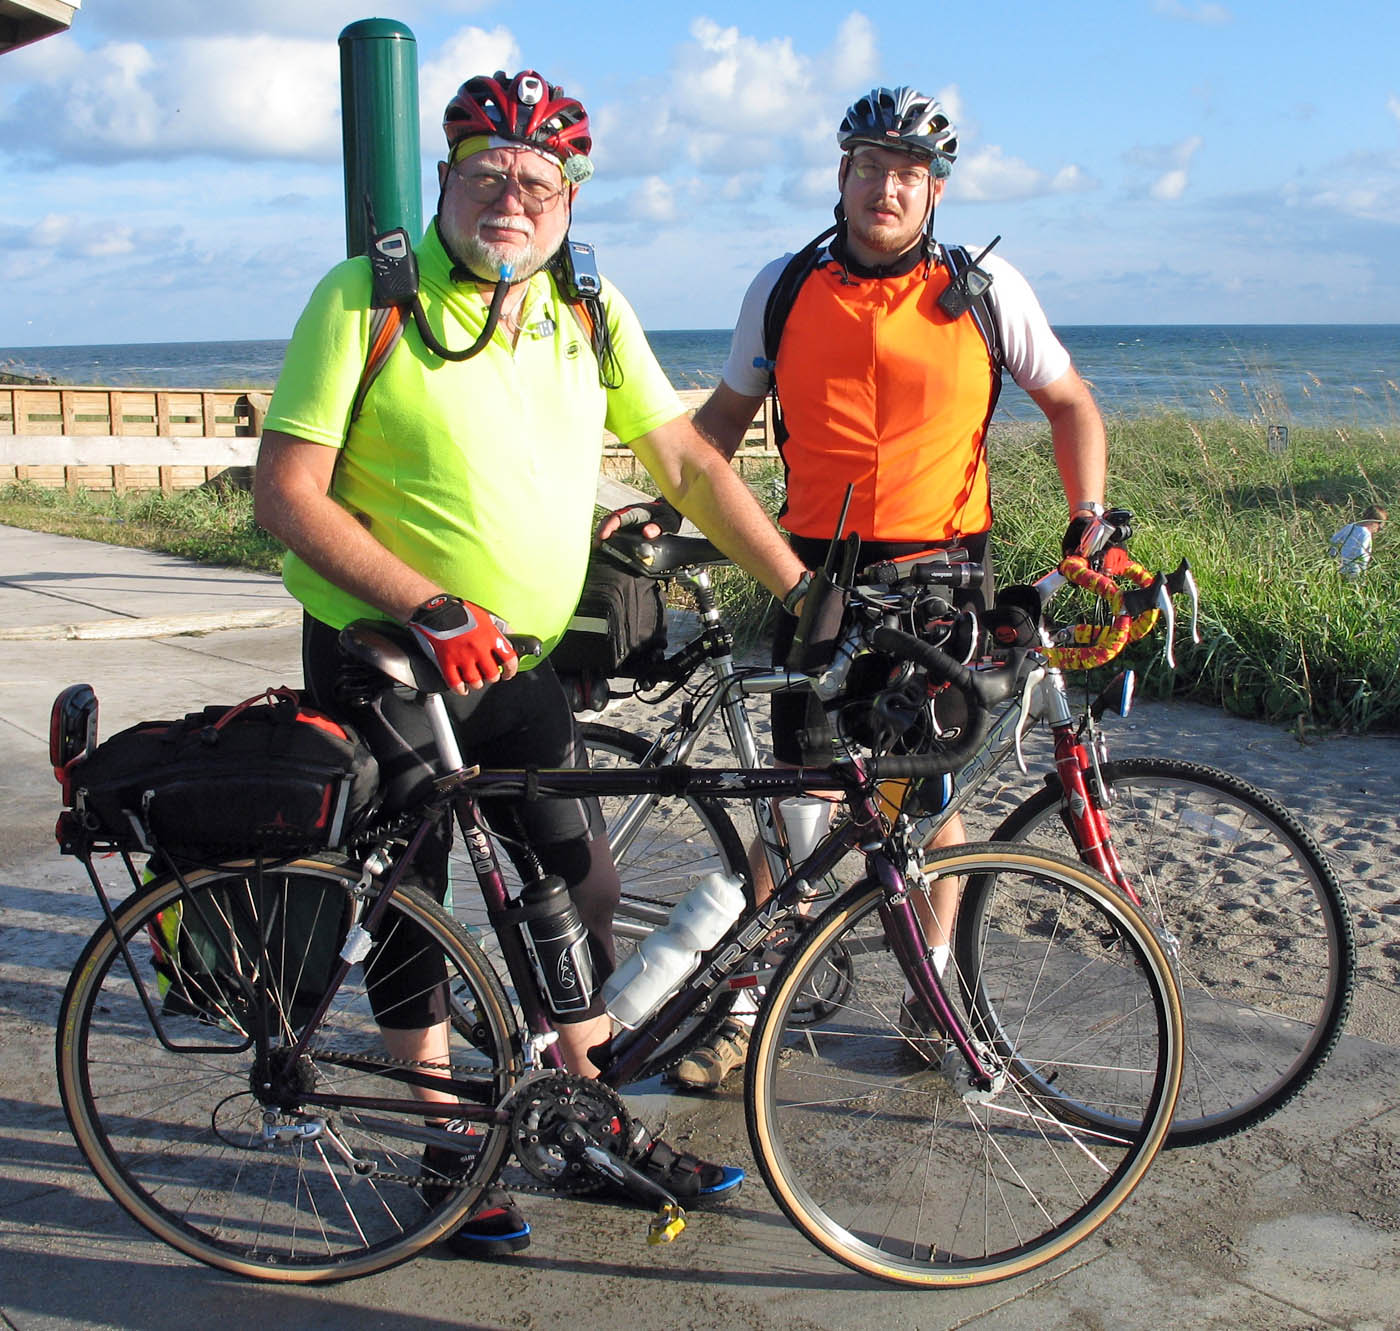 Ken & Matt get ready to begin their cross-Florida bicycle ride.